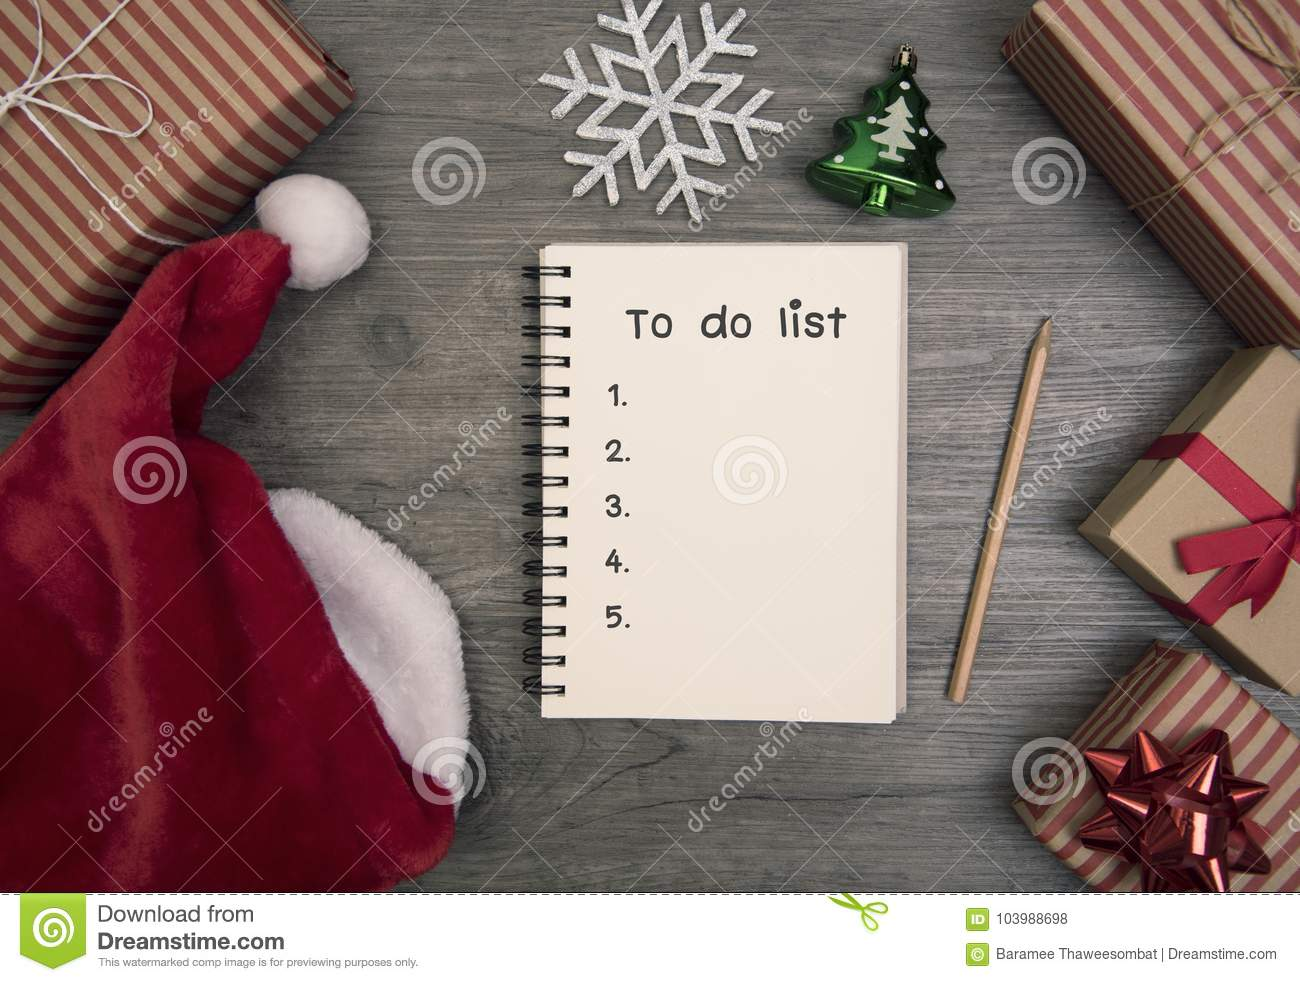 to do list for start christmas and decorated with gift box on wooden table - Christmas Decorations List